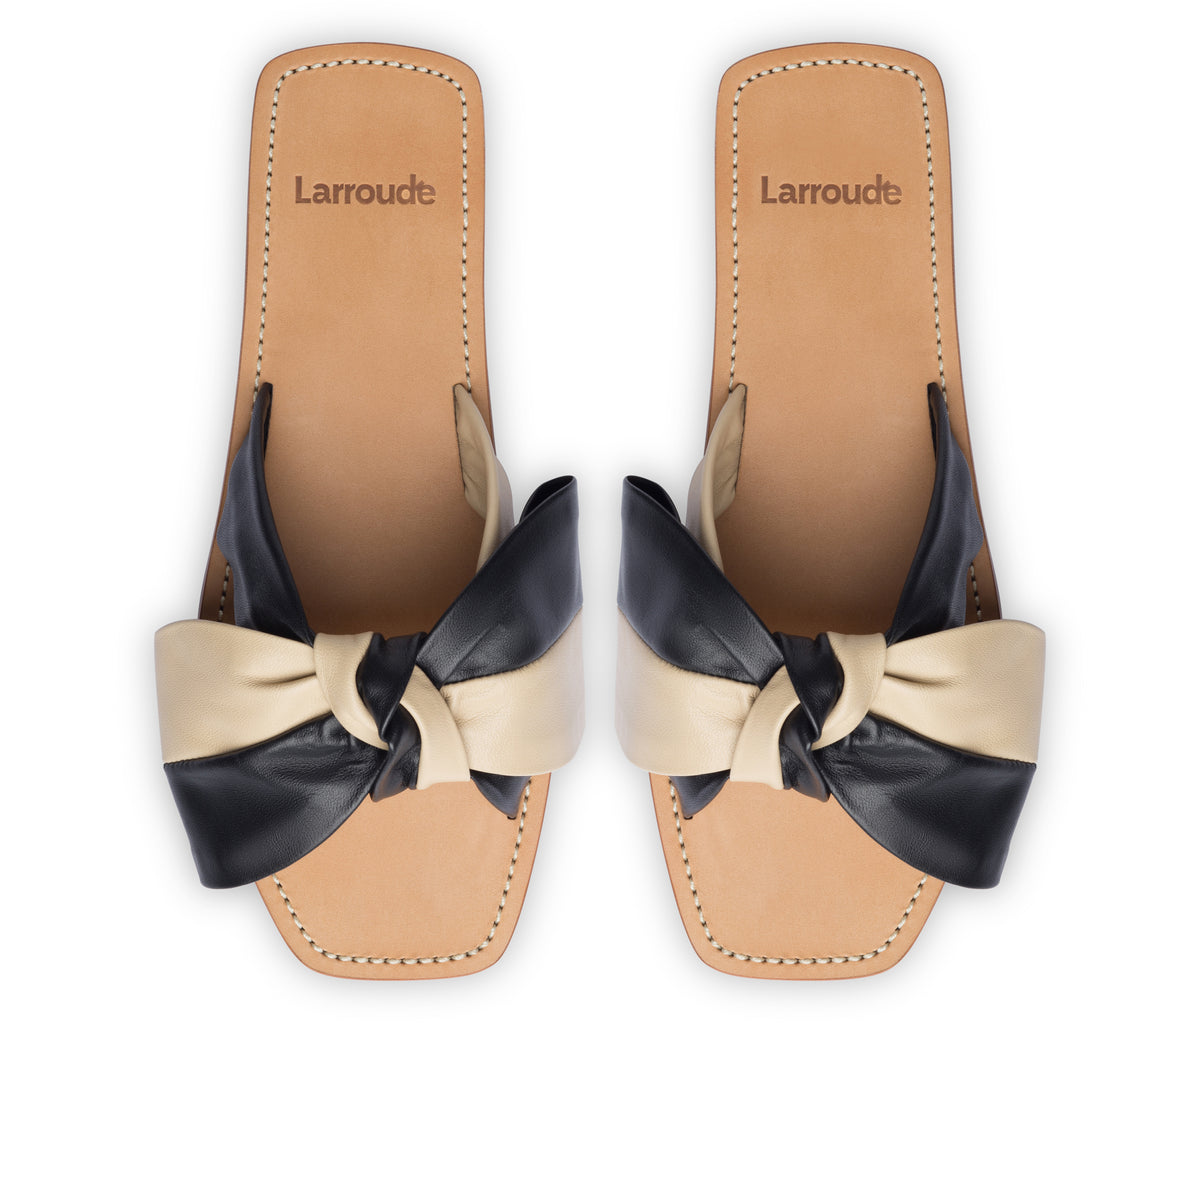 Eloise Flat Mule In Black and Beige Leather